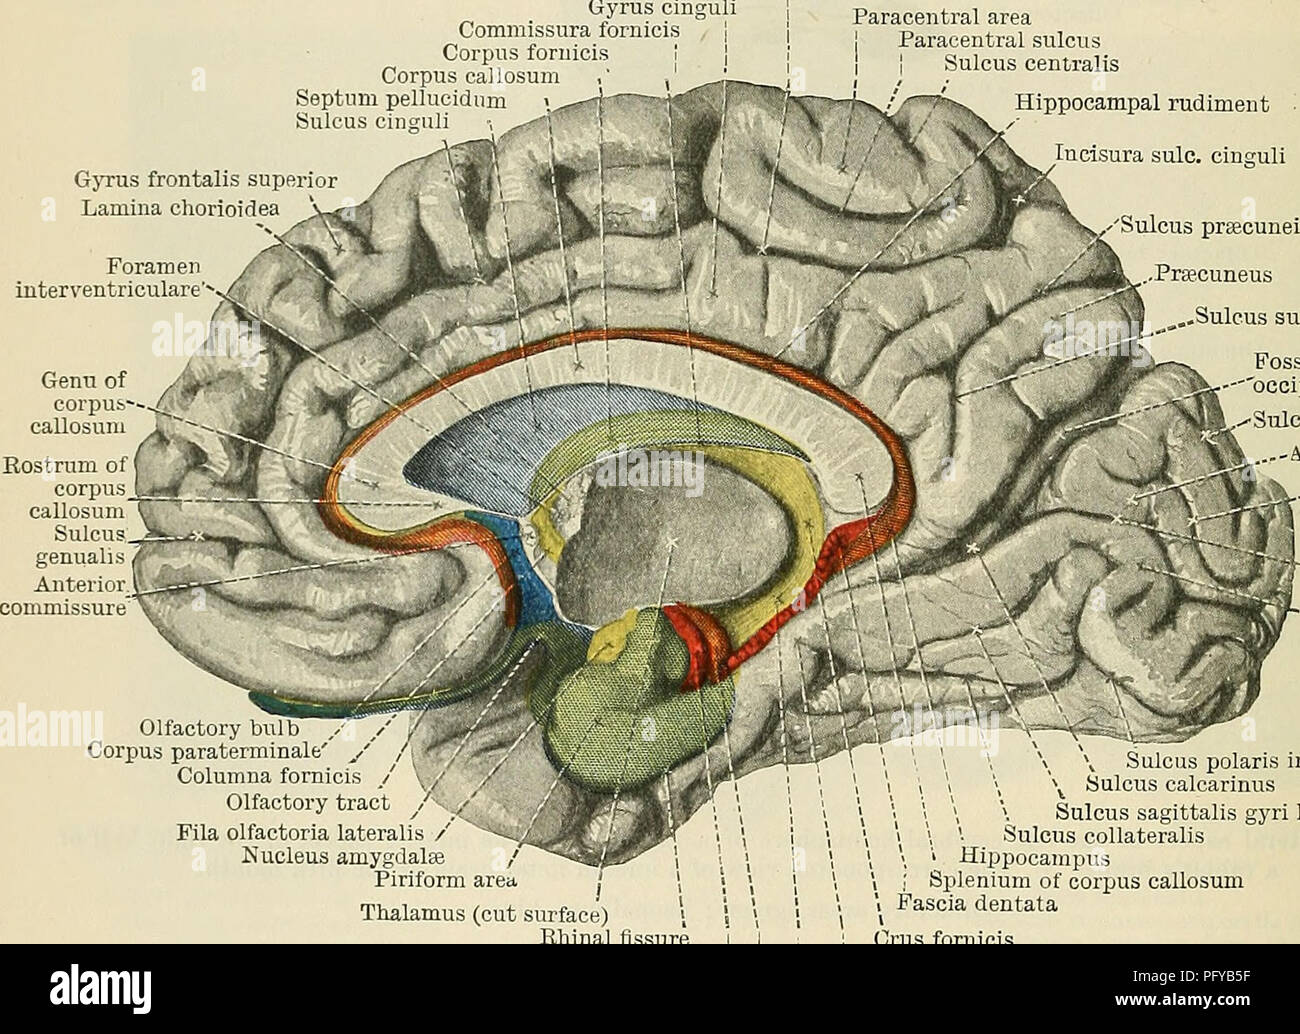 . Cunningham's Text-book of anatomy. Anatomy. 626 THE NEKVOUS SYSTEM. impressions of smell are brought into relation with those of other senses (probably taste); and from the hippocampal cells fibres are emitted to form a system known as the fornix, which establishes connexions with the hippocampus of the other hemisphere and with the hypothalamus, thalamus, and more distant parts of the brain. The rudiment of the hippocampal formation that develops on the medial surface begins in front, alongside the place where the stalk of the olfactory peduncle (which becomes the trigonum olfactorium) is i - Stock Image